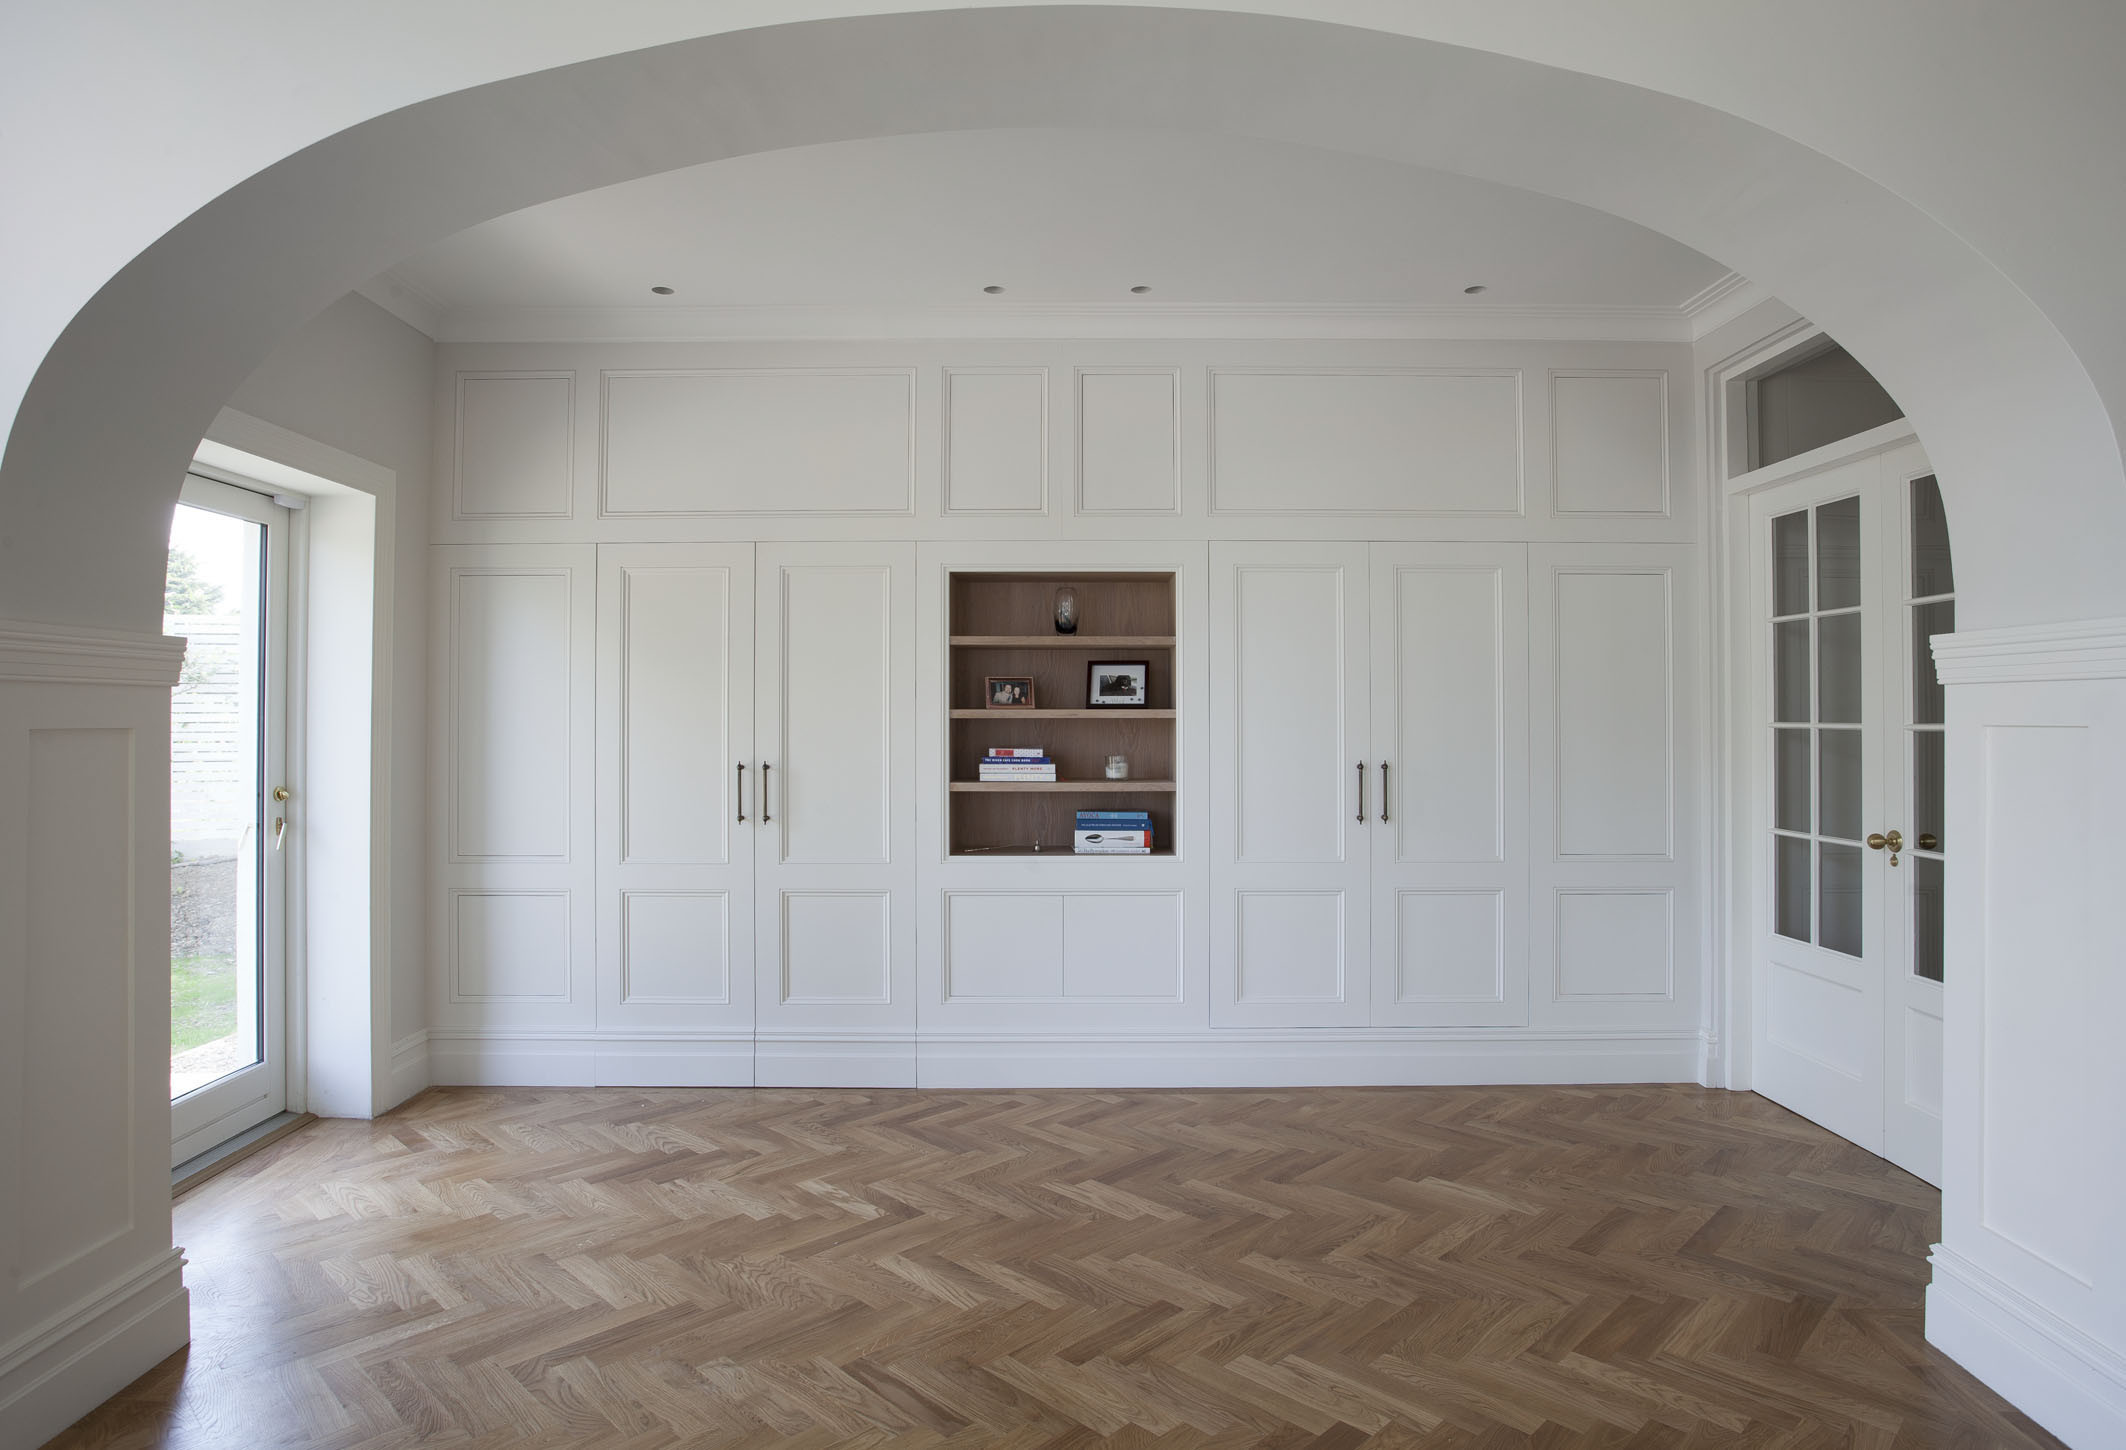 hardwood flooring company dublin of islington handcrafted kitchen collection woodale ireland regarding solid wood handpainted kitchen with bespoke pantry detail by woodale